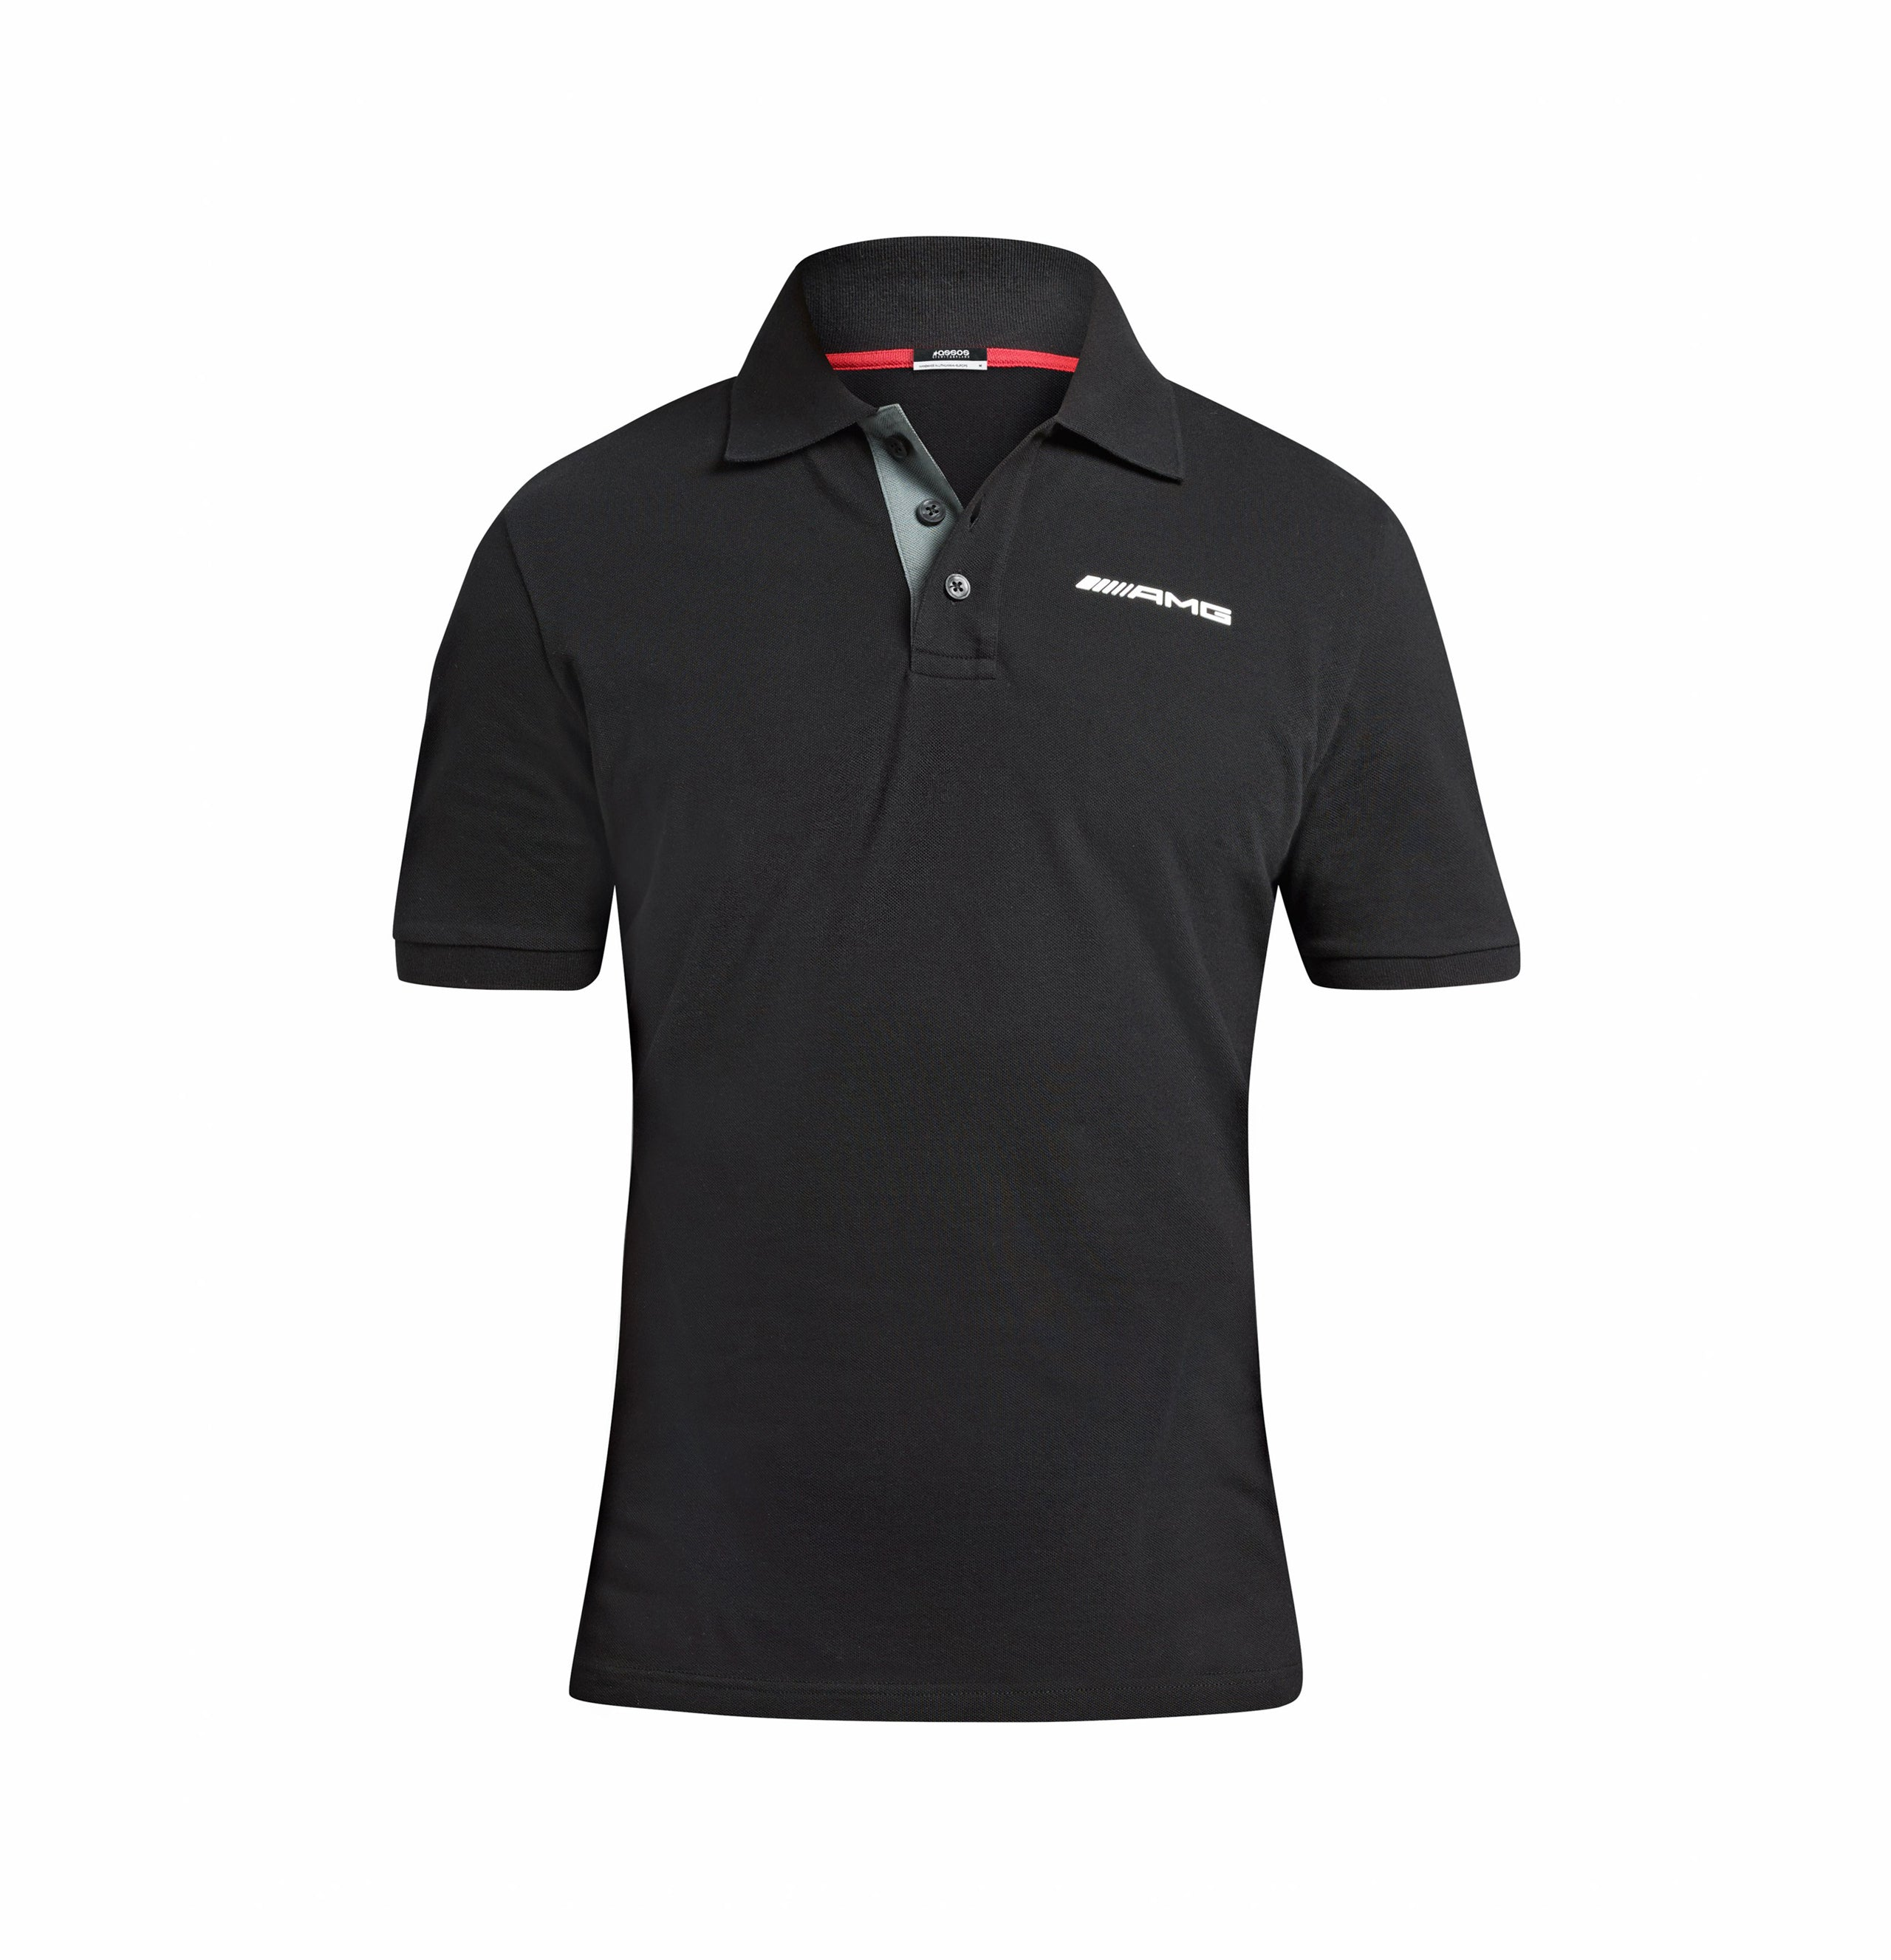 AMG POLO SHIRT SPORT LADY